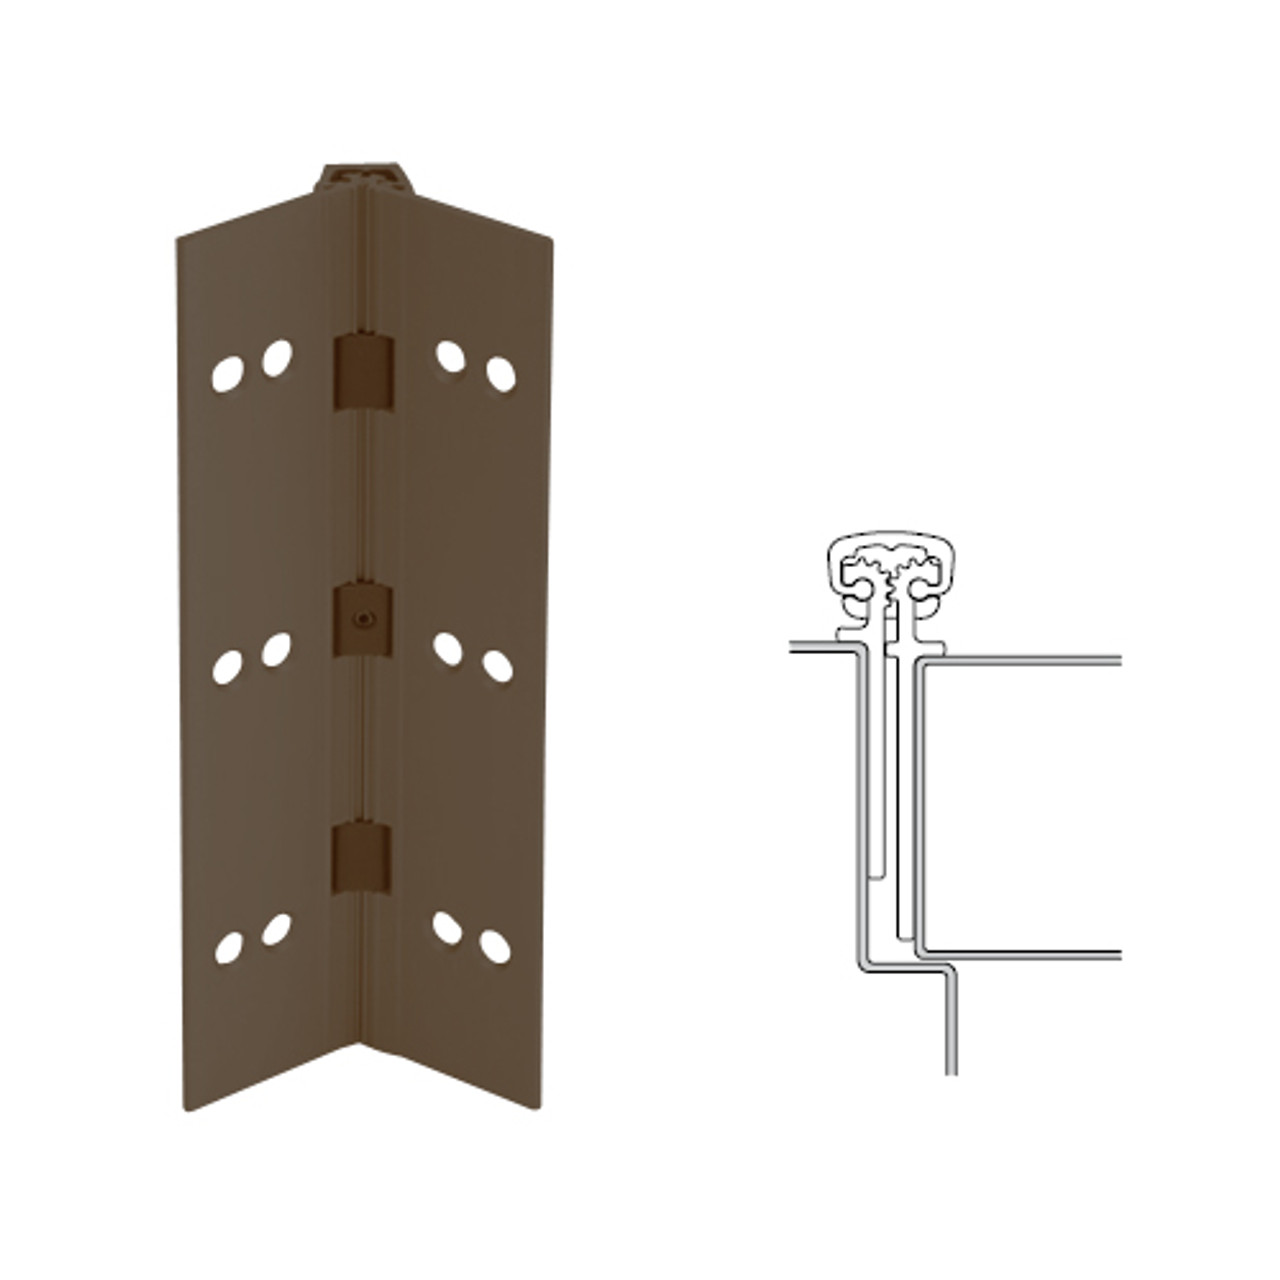 026XY-313AN-95-WD IVES Full Mortise Continuous Geared Hinges with Wood Screws in Dark Bronze Anodized